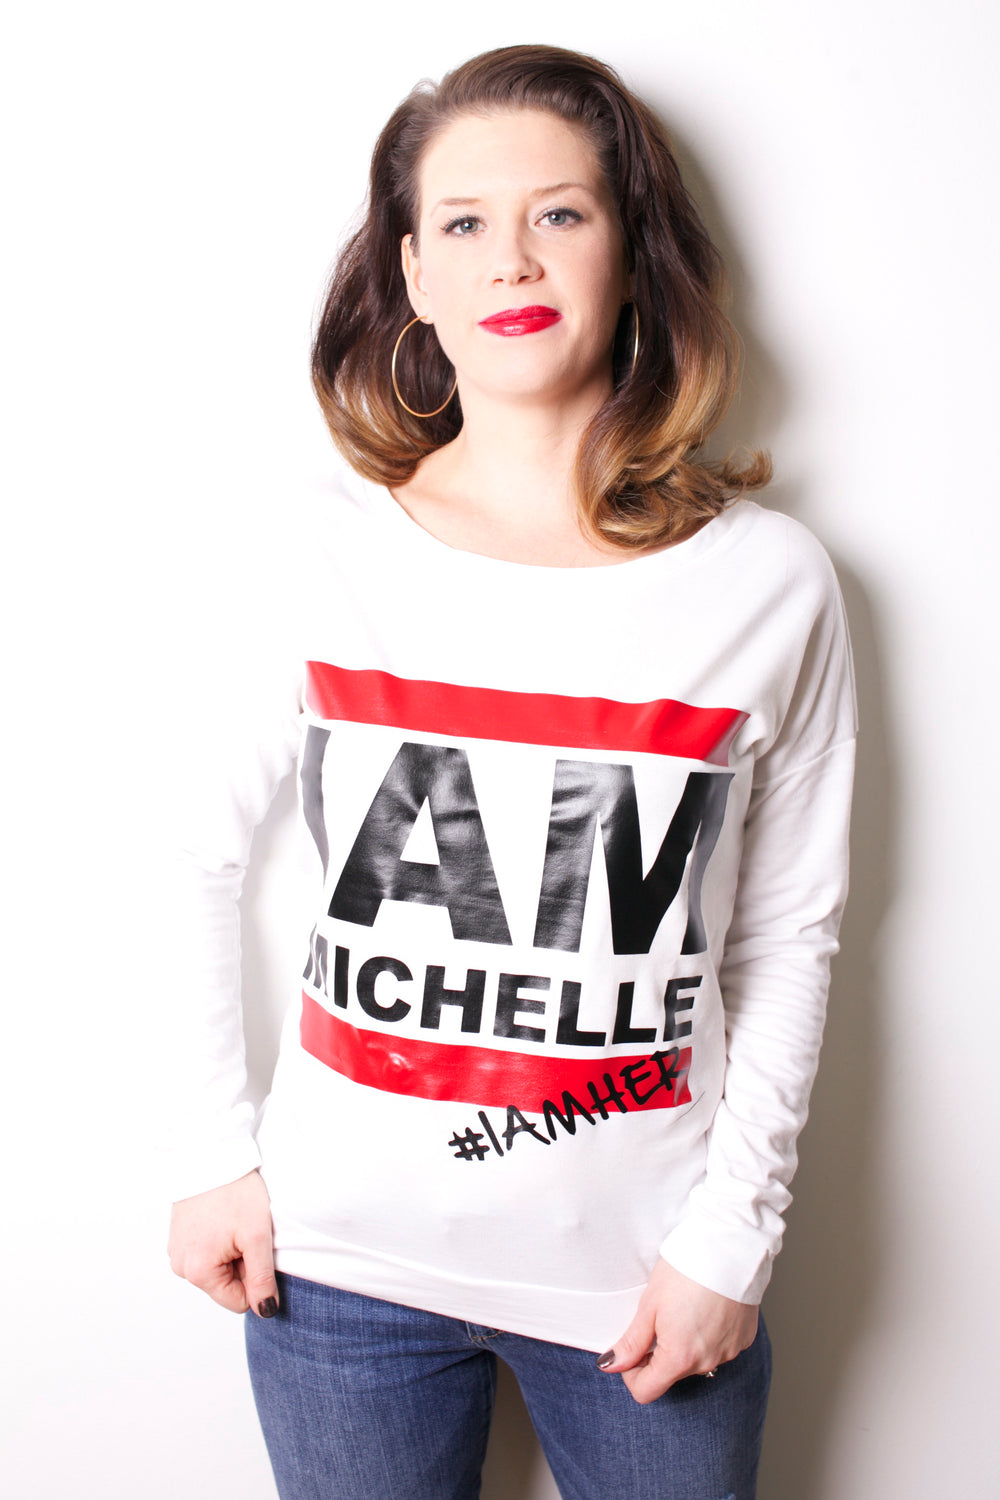 I AM MICHELLE (FLOTUS Inspired) - Women's Long Sleeve - White - I AM HER Apparel